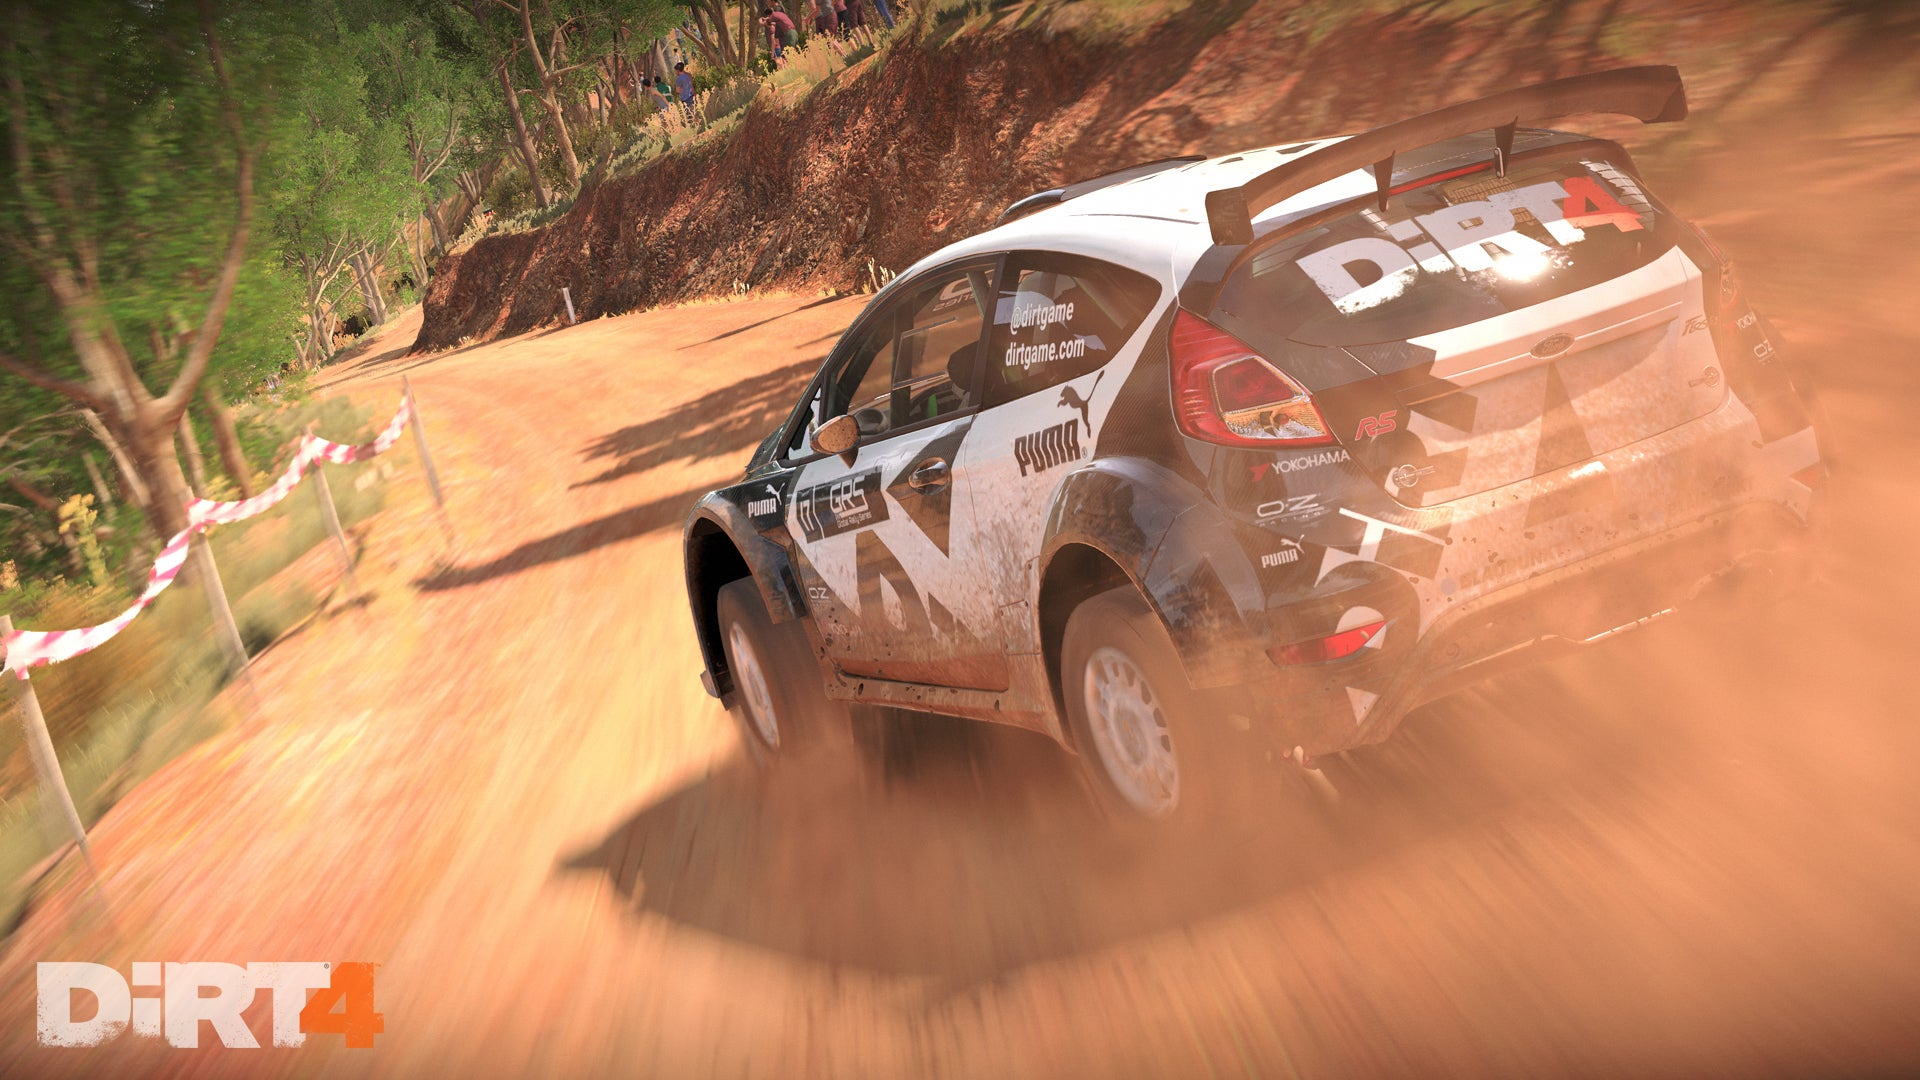 Dirt 4 Review | Trusted Reviews